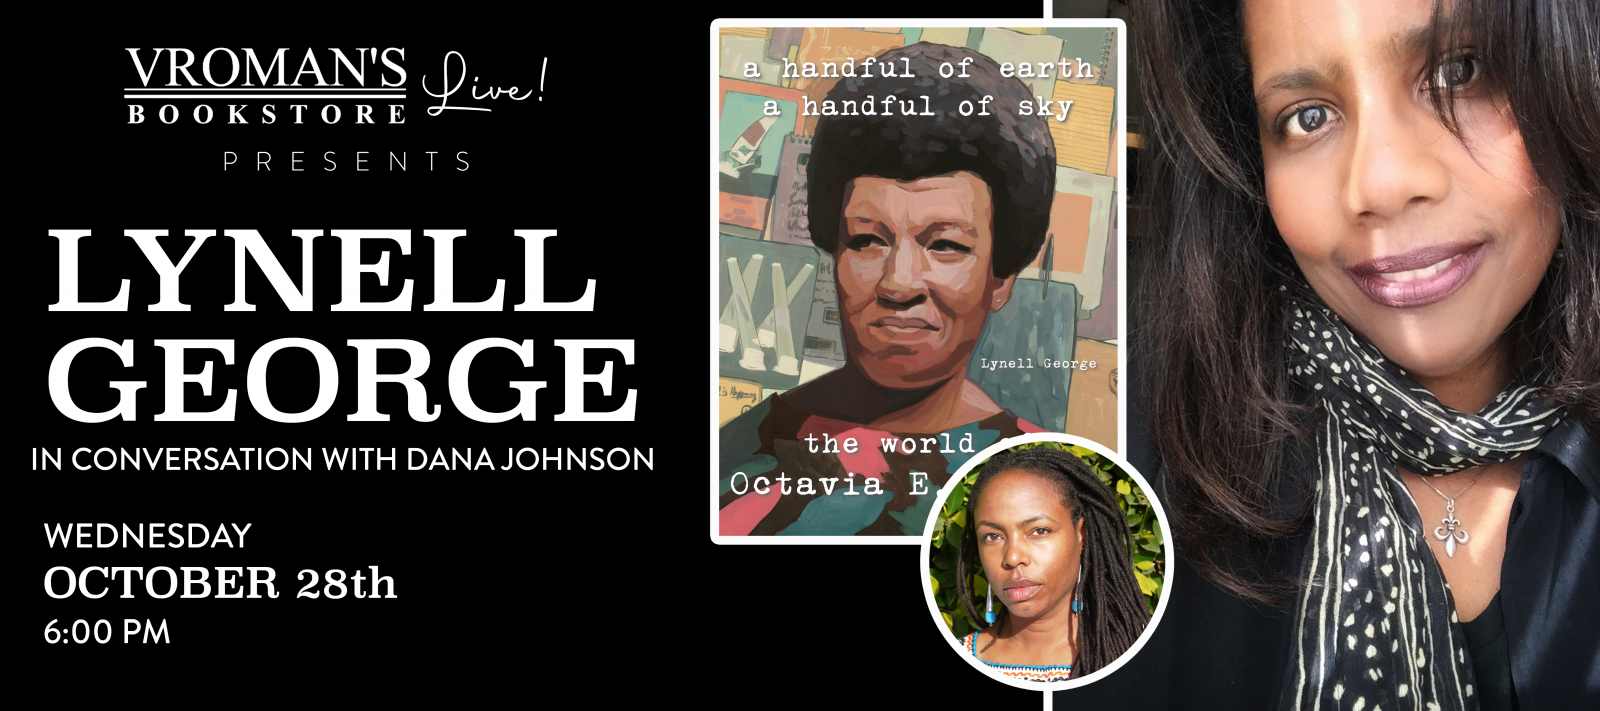 Vroman's Live presents Lynell George, in conversation with Dana Johnson, on Wednesday October 28th at 6pm